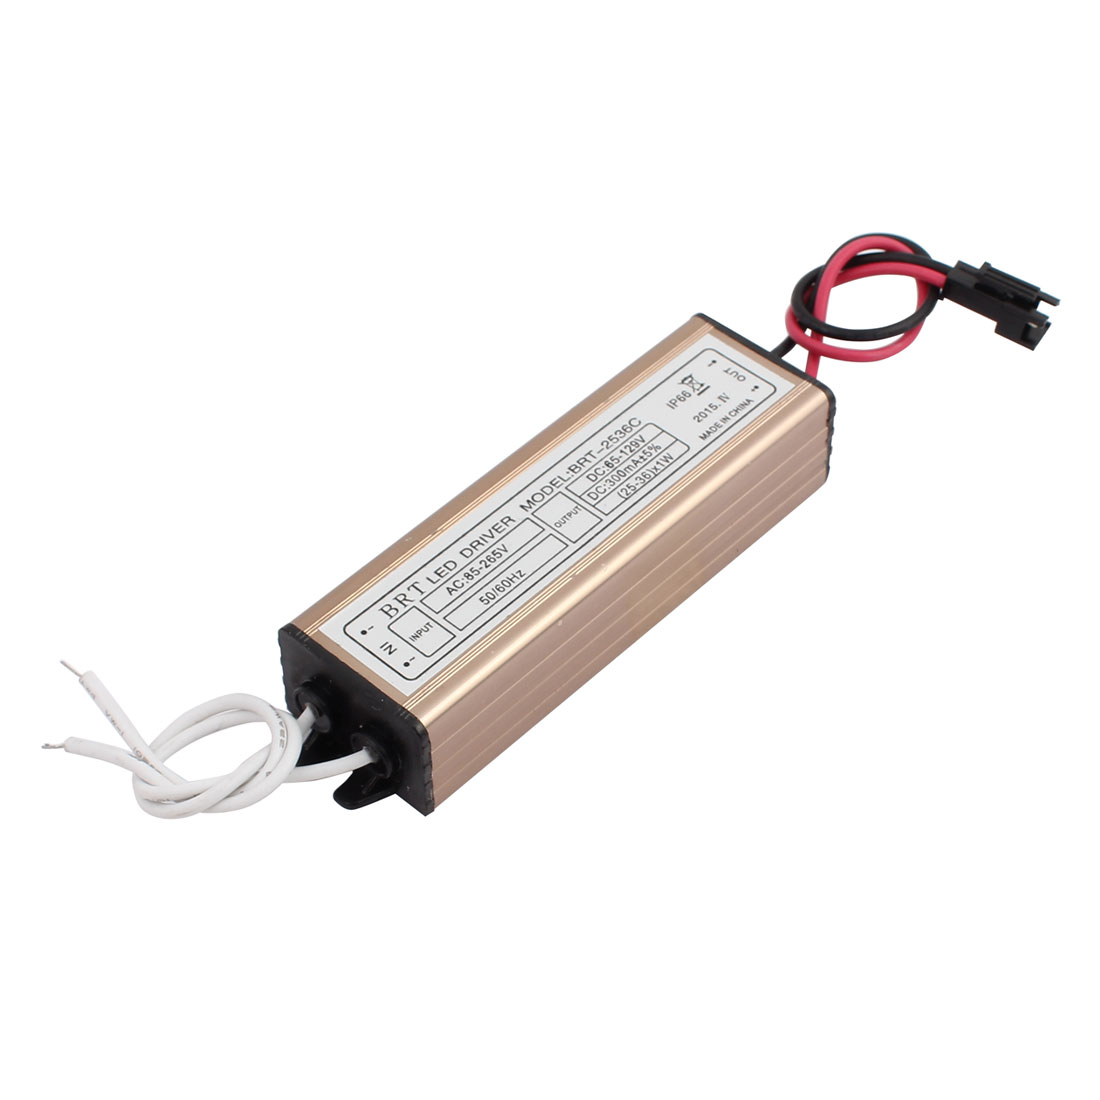 AC85-265V to DC65-129V 300mA Transformer IP66 Waterproof LED Driver Power Supply